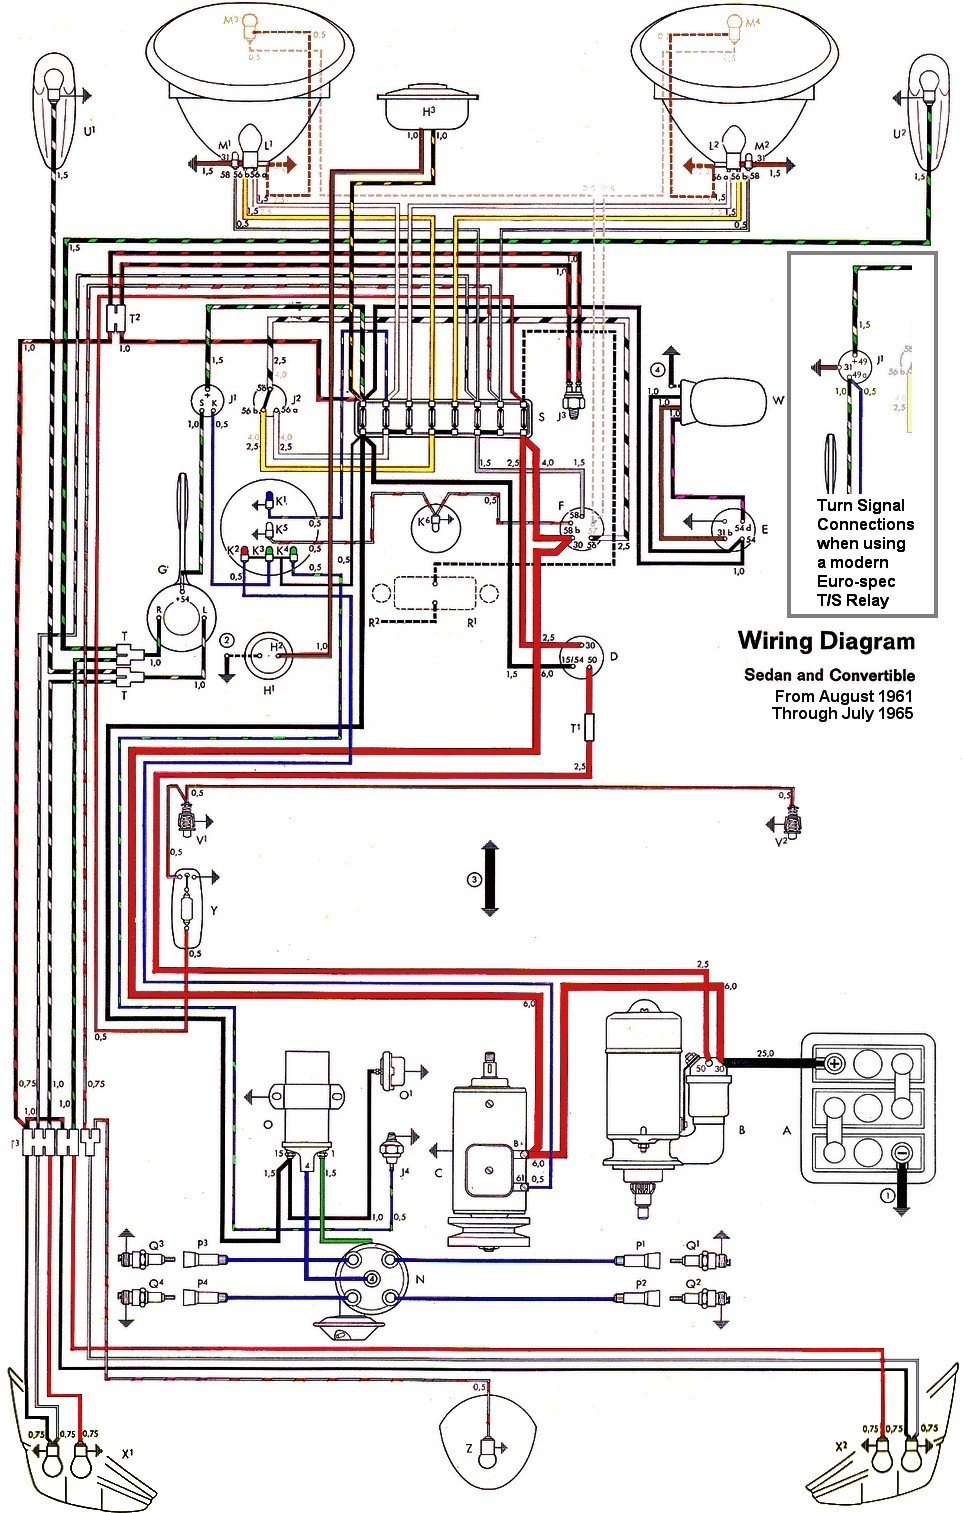 Vw Beetle Wiring | Wiring Diagram on vw touareg fuse box, mazda rx8 fuse box, super beetle fuse box, vw beetle fuse block, 2000 beetle fuse box, vw eos fuse box, 73 beetle fuse box, 98 jetta fuse box, toyota supra fuse box, porsche 944 fuse box, honda s2000 fuse box, vw fuse box diagram, vw thing fuse box, ford contour fuse box, toyota rav4 fuse box, 2004 beetle fuse box, peugeot 106 fuse box, vw beetle headlight fuse, 1968 vw bug fuse box, 2008 yaris fuse box,